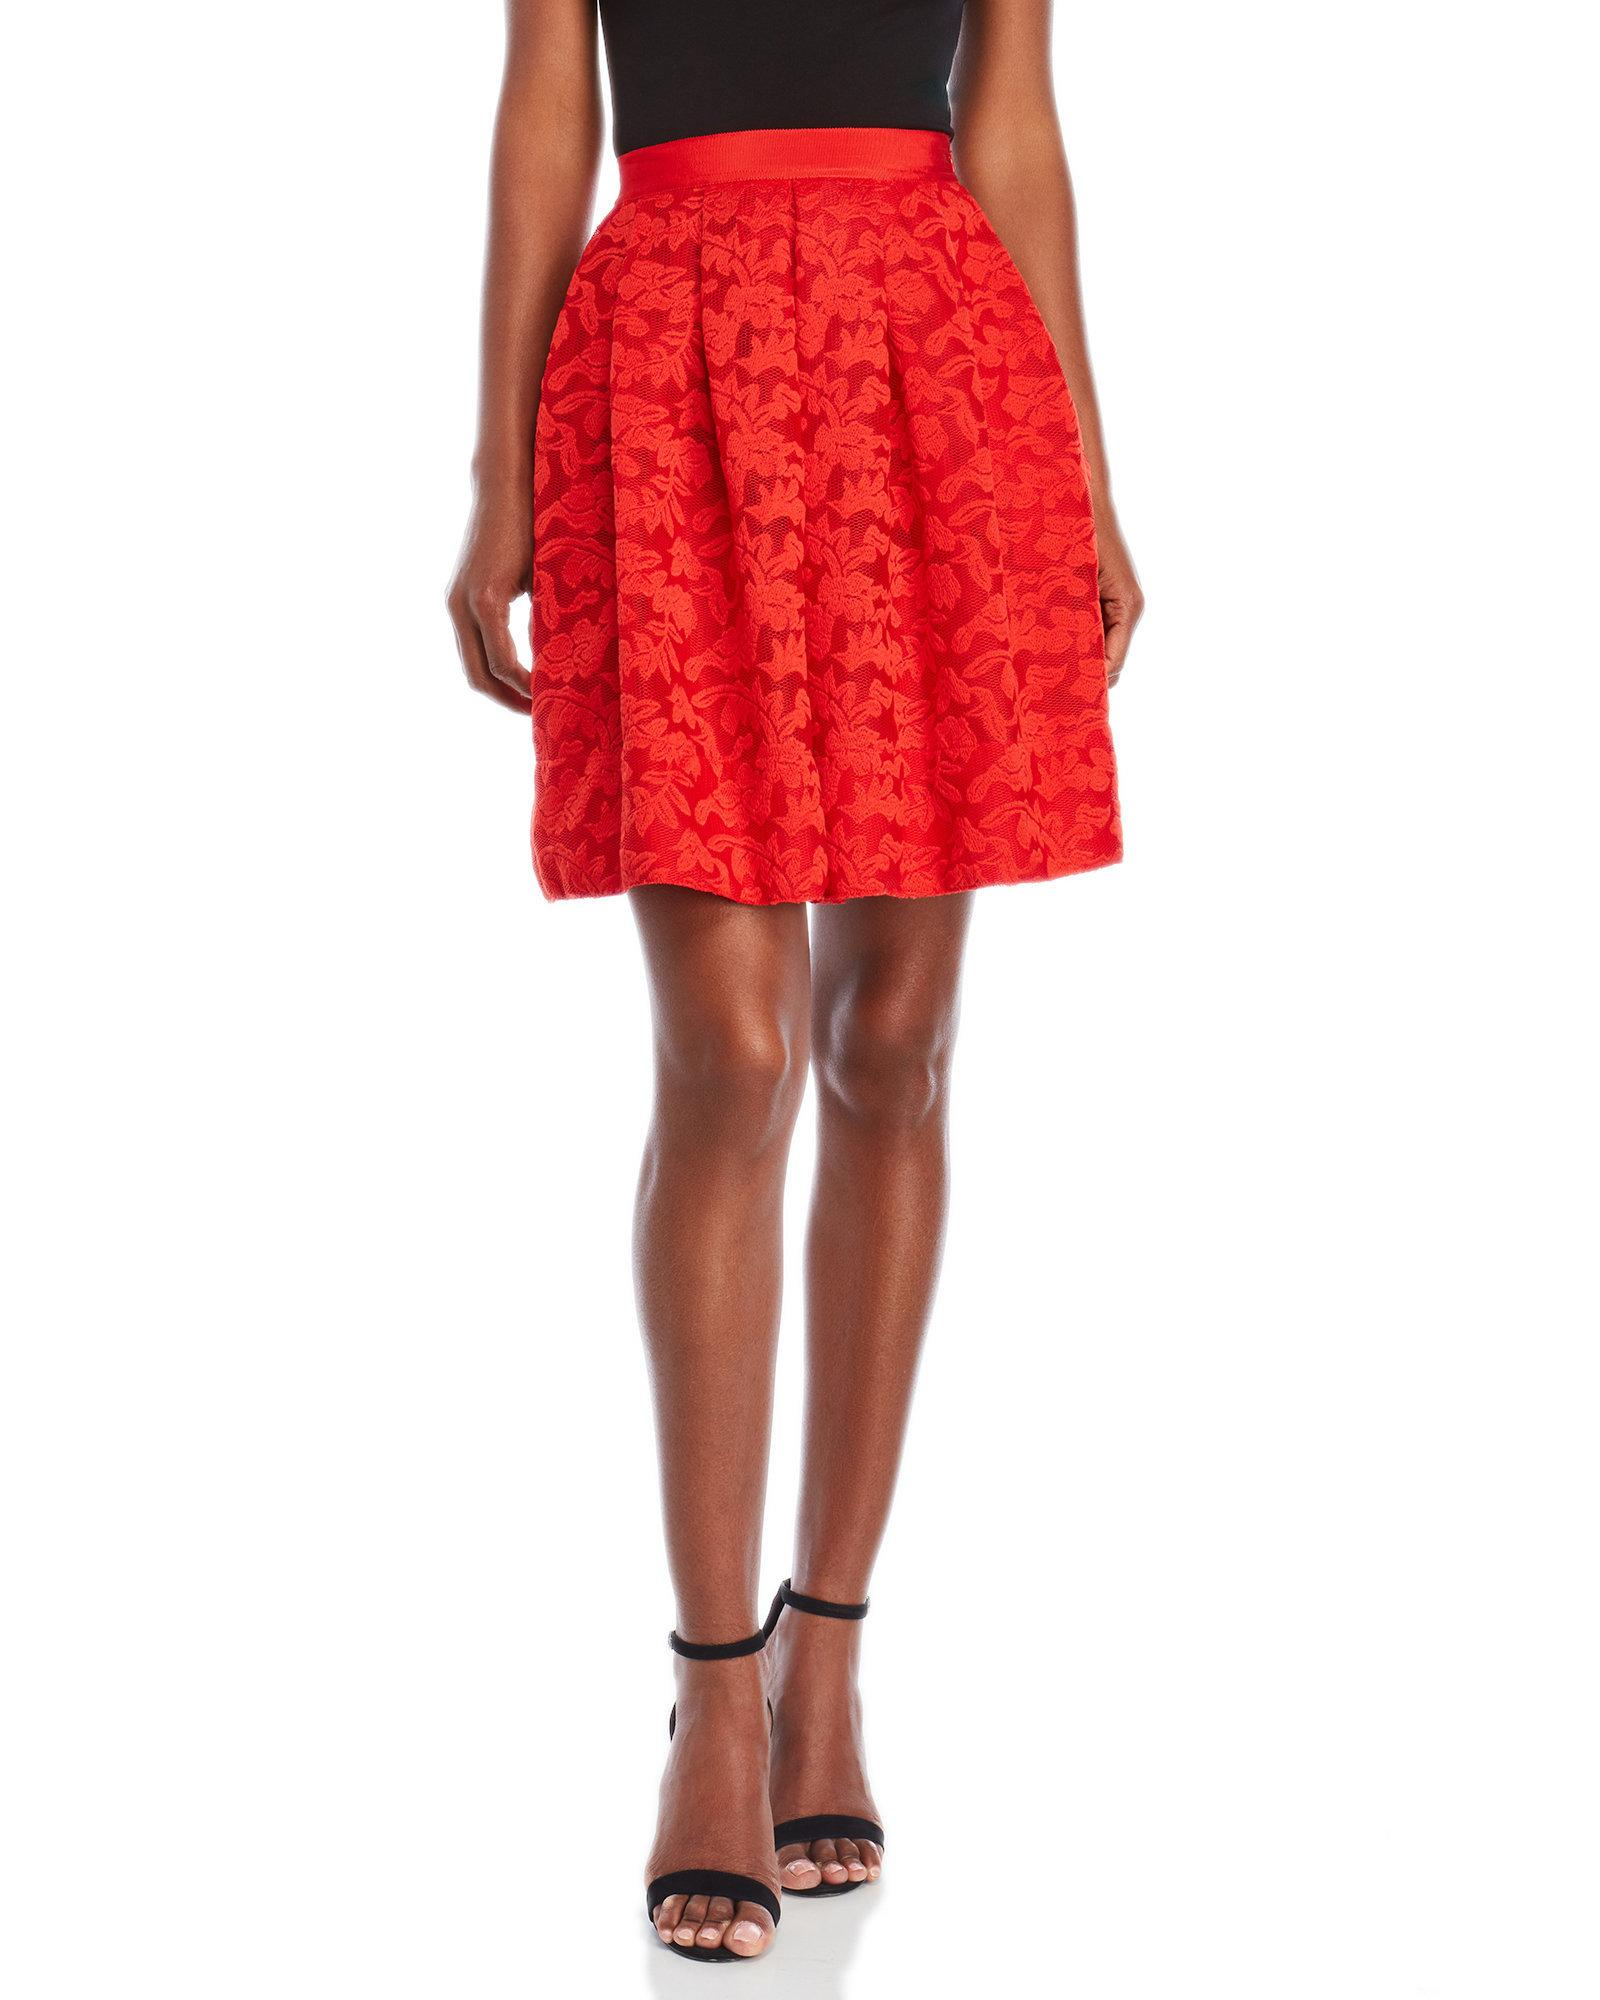 4d41cf368 Sandro Red Lace Skirt in Red - Lyst